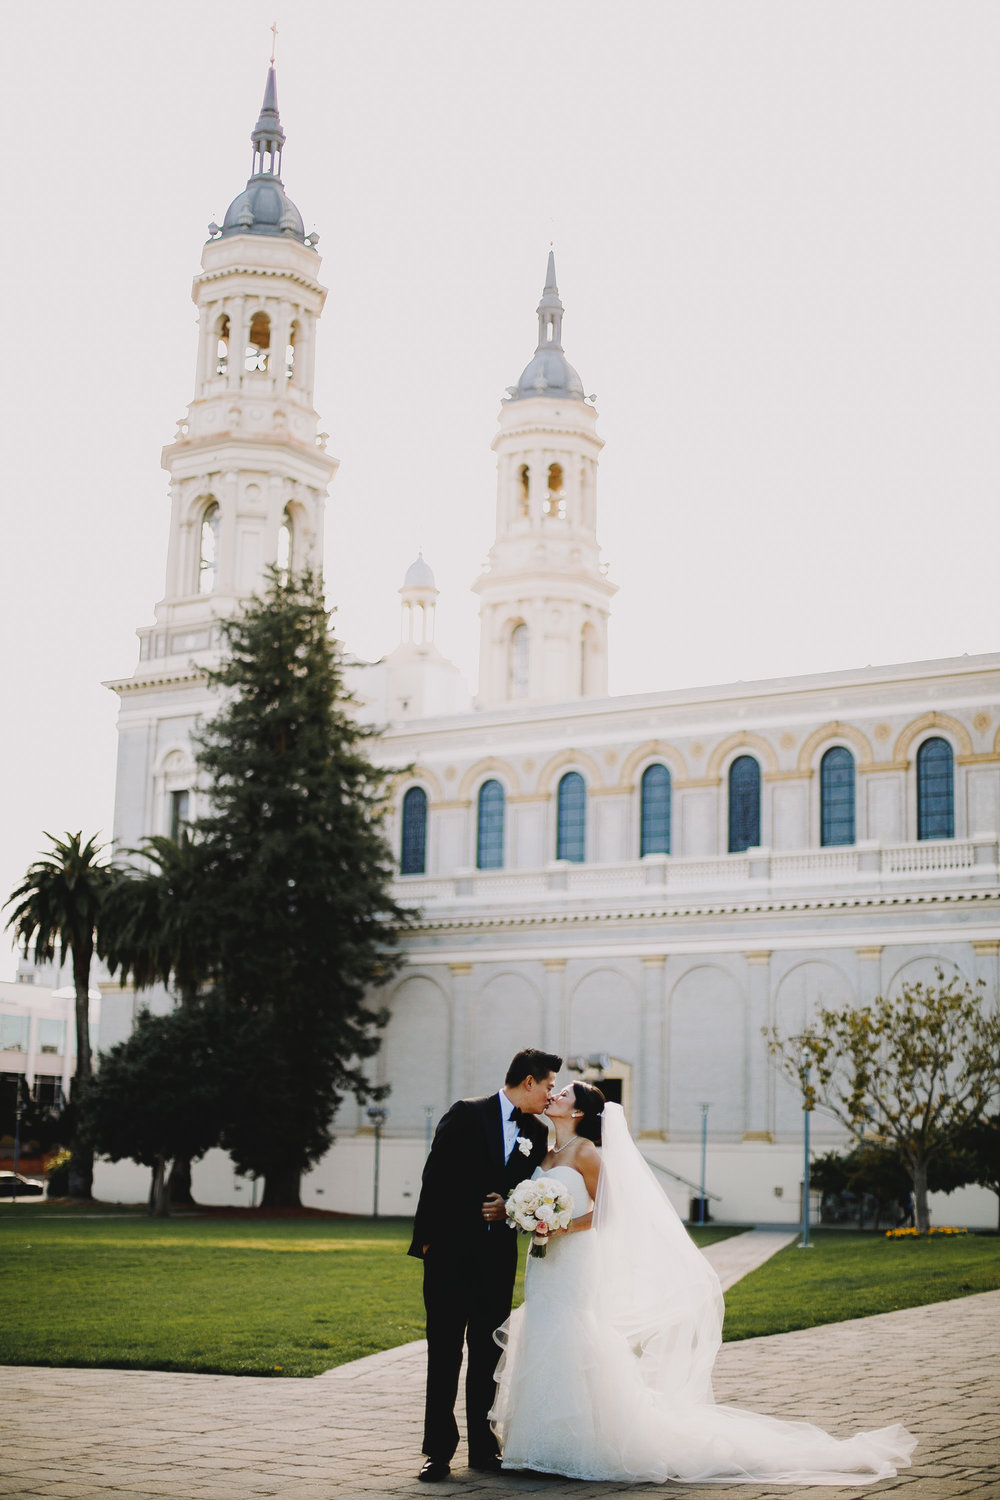 Archer Inspired Photography San Francisco Bay Area California Wedding Photographer Natural Light Lifestyle Intimate-54.jpg